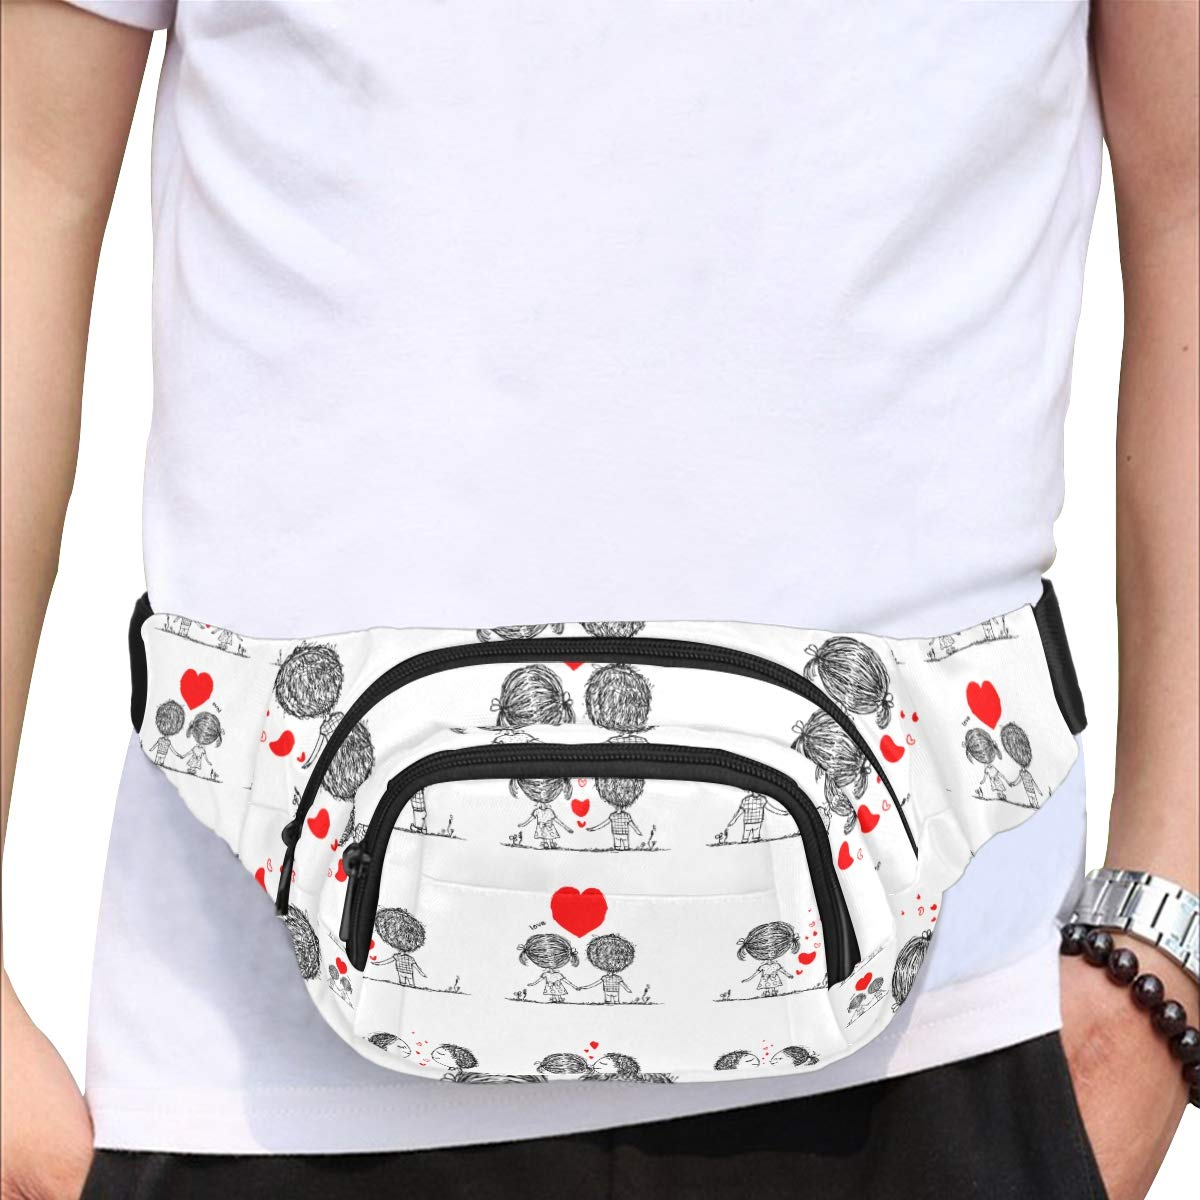 Couple In Love Together Valentine Fenny Packs Waist Bags Adjustable Belt Waterproof Nylon Travel Running Sport Vacation Party For Men Women Boys Girls Kids